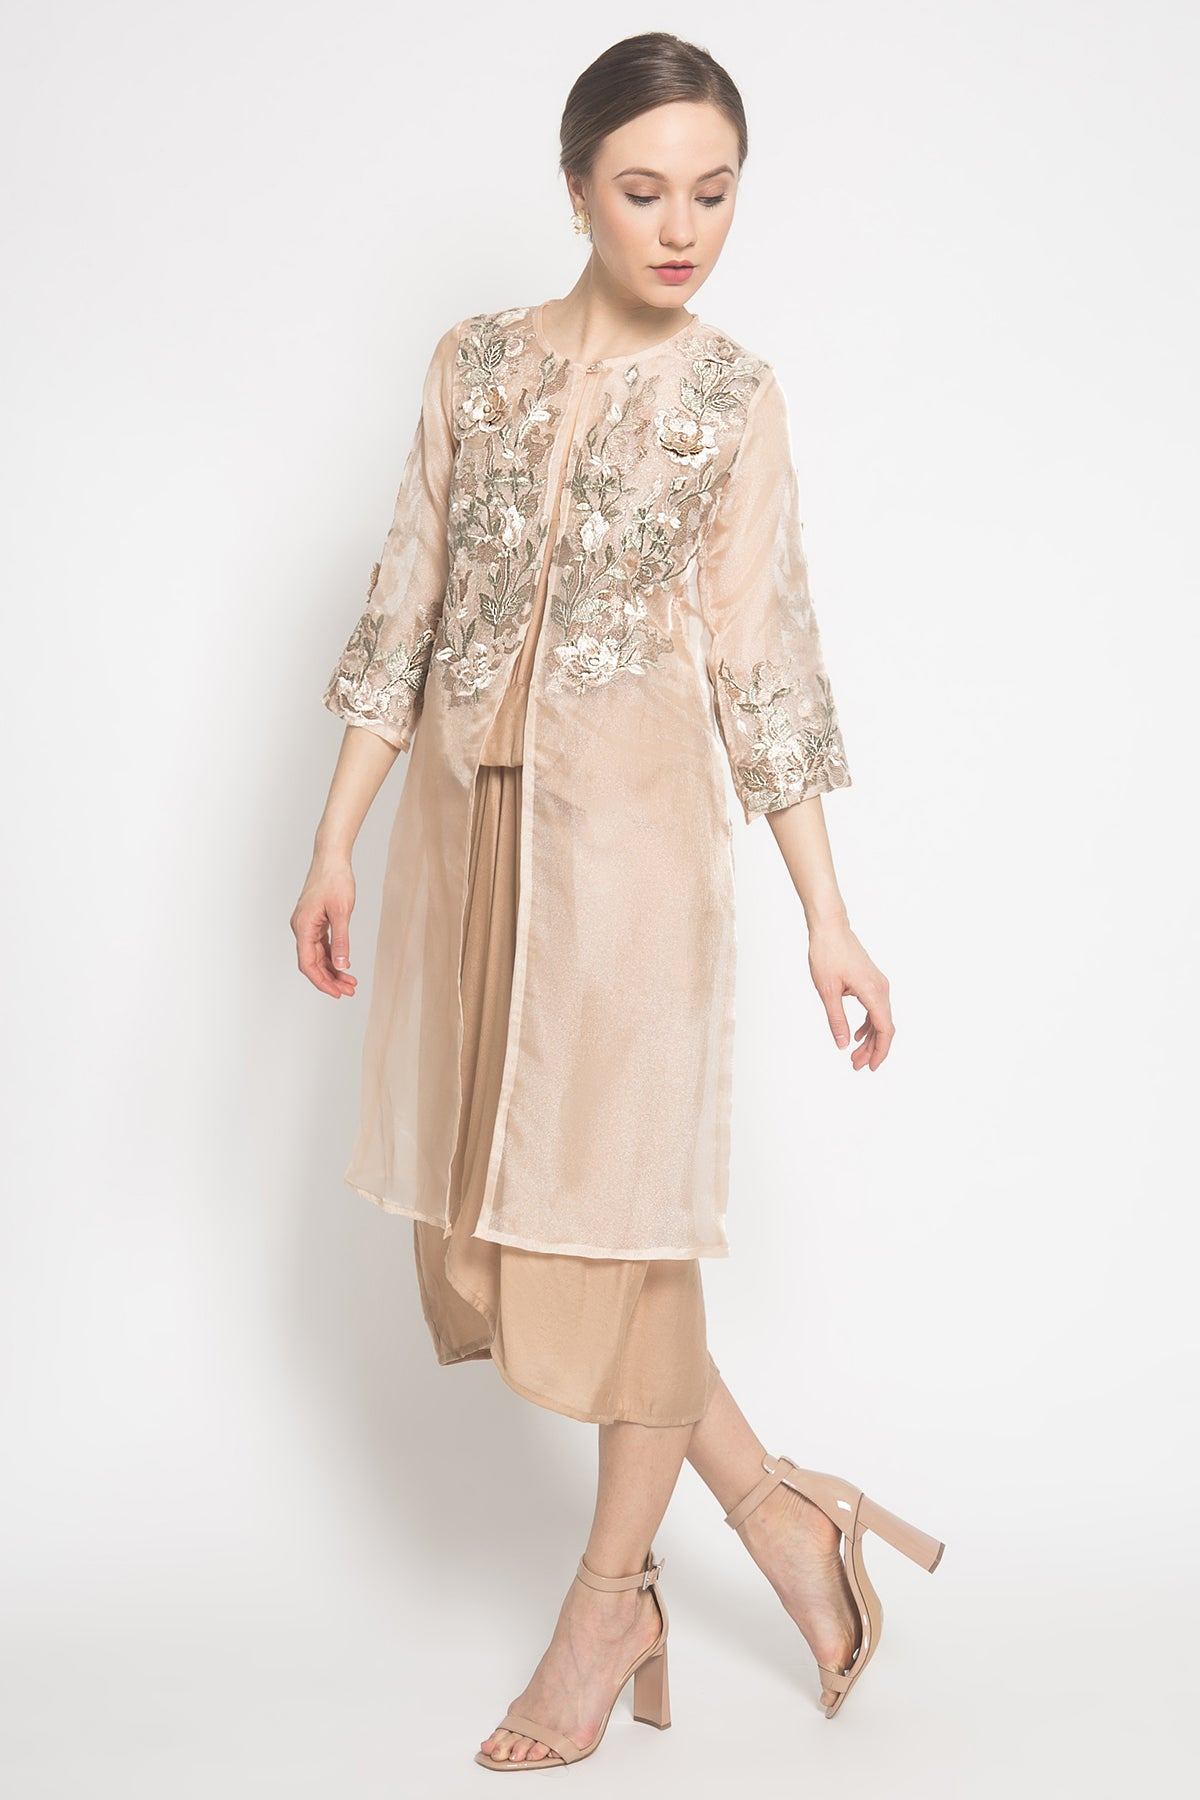 Remy Outer Dress in Peach Cream